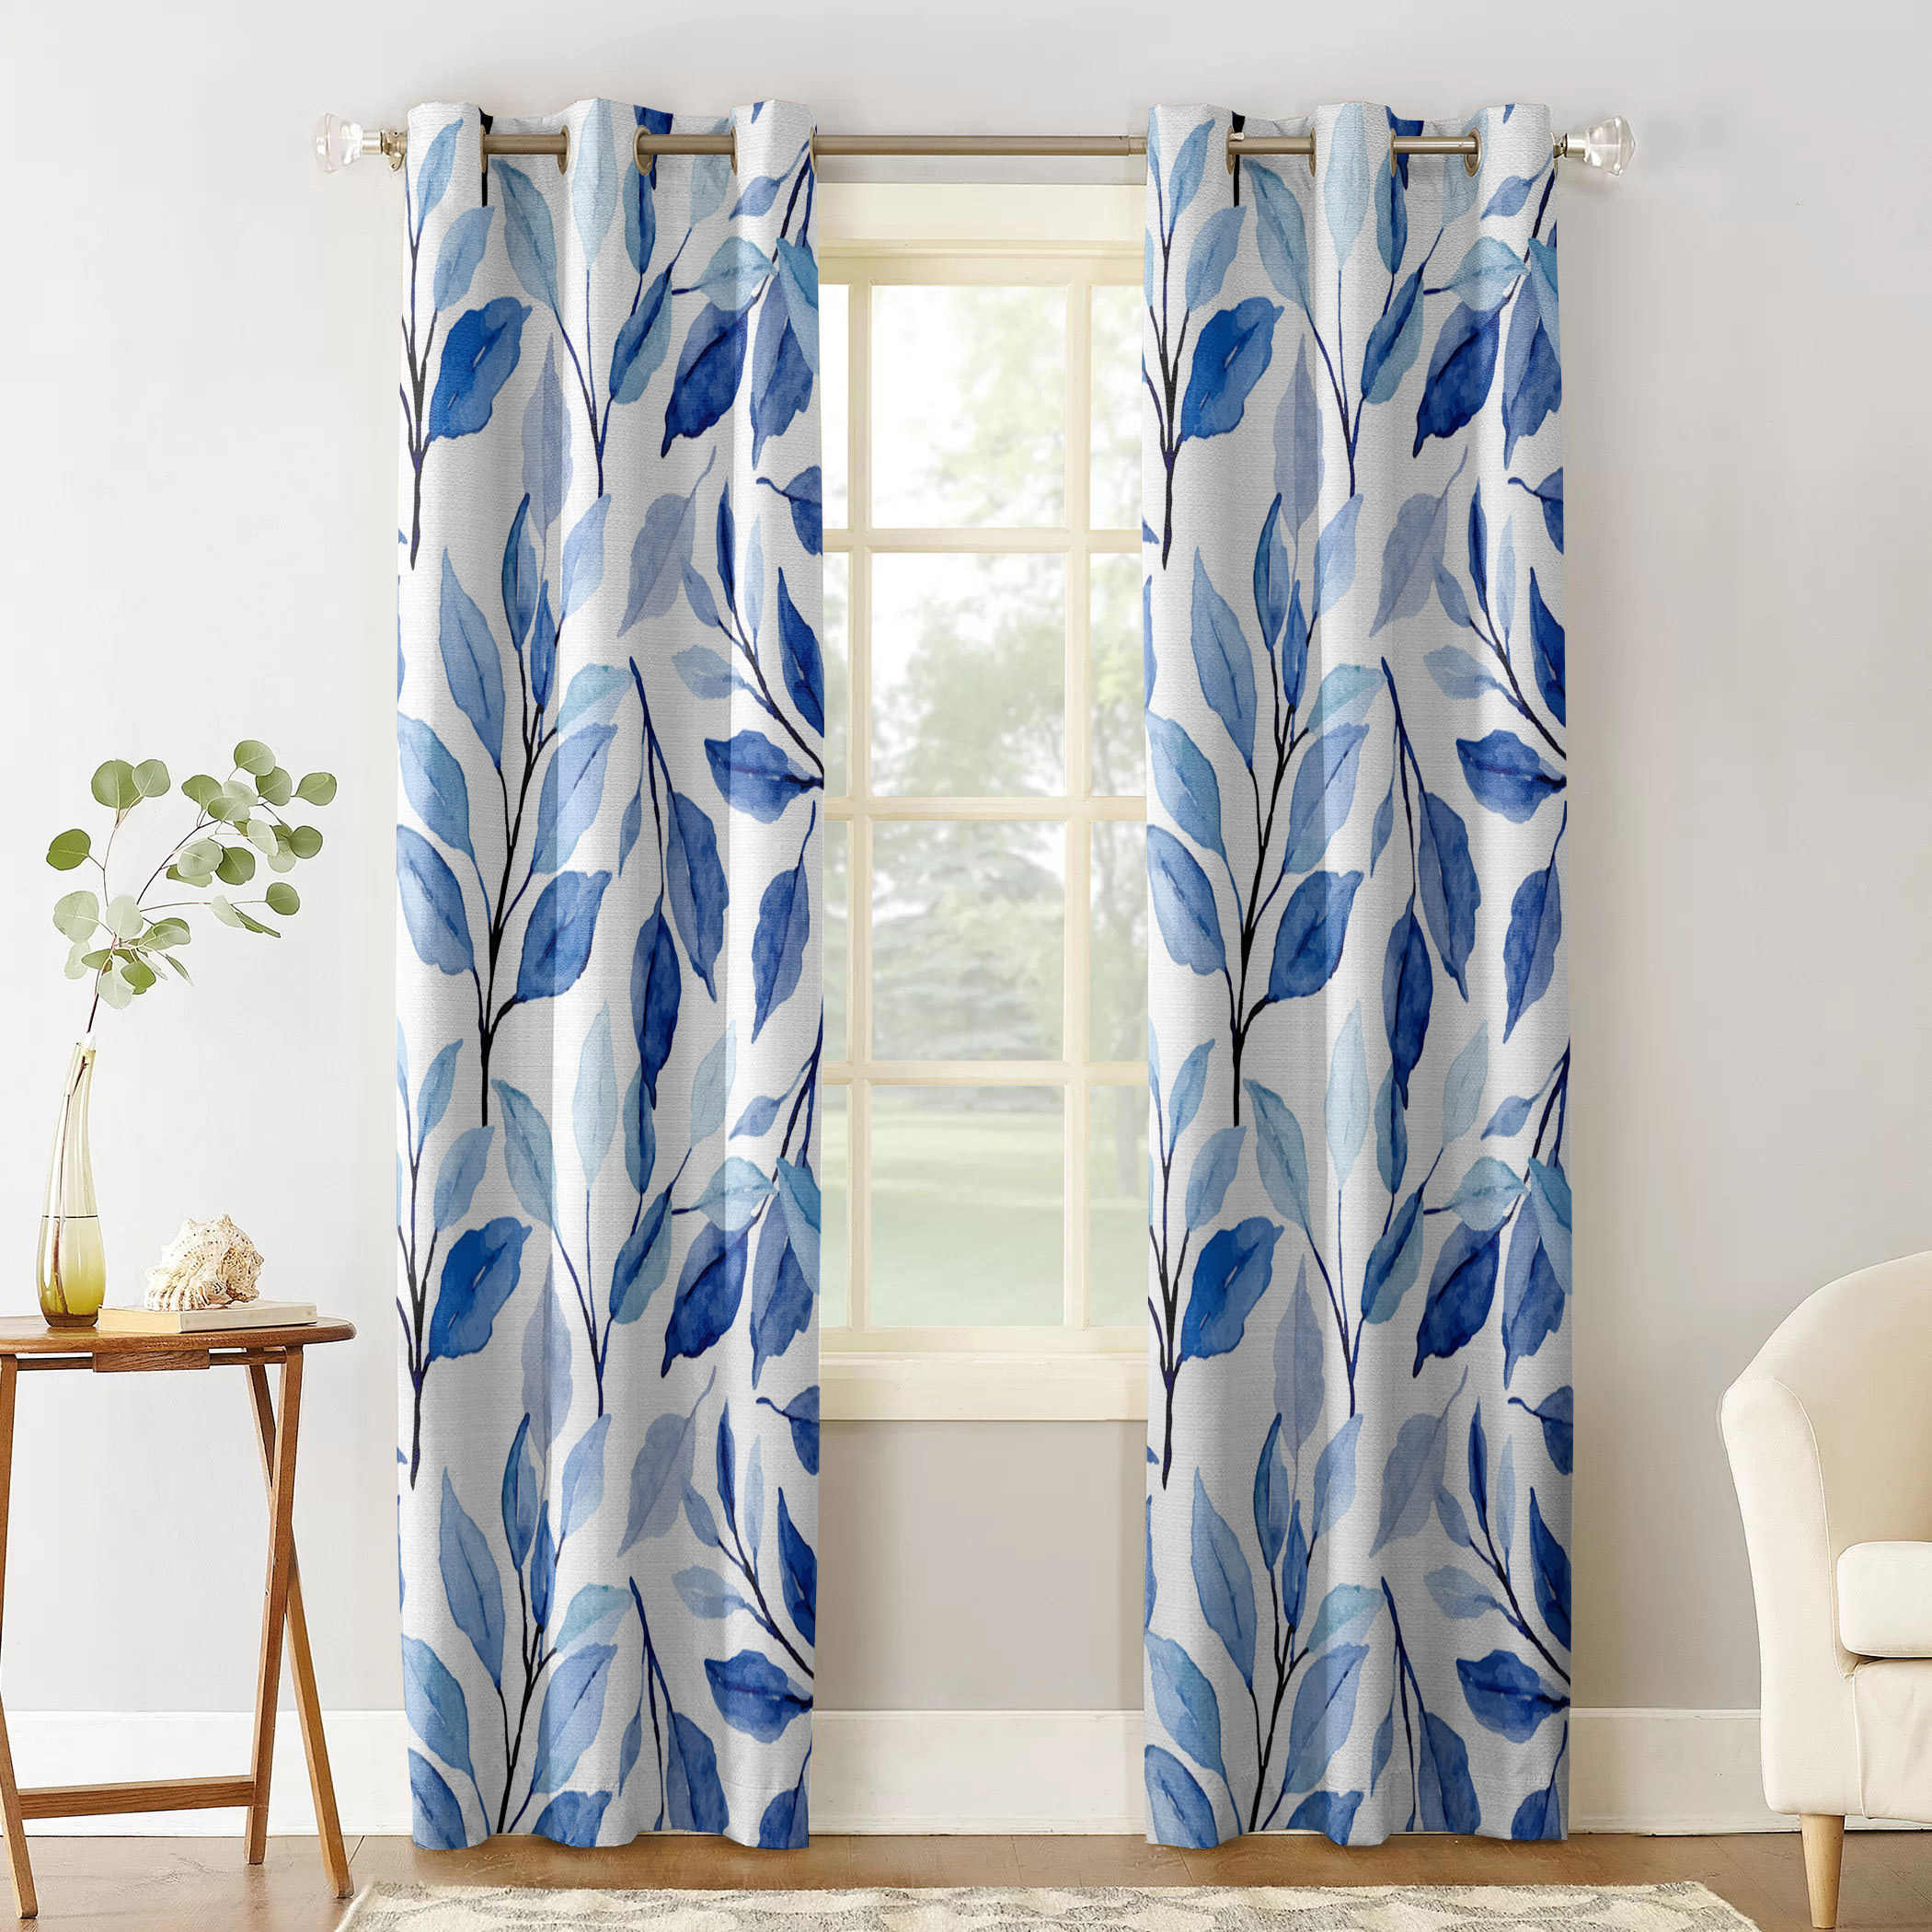 Multi Size Leaves Watercolor Ethnic Style Indigo Window Curtains Polyester Fabric Living Room Curtain Home Decor Curtains Aliexpress